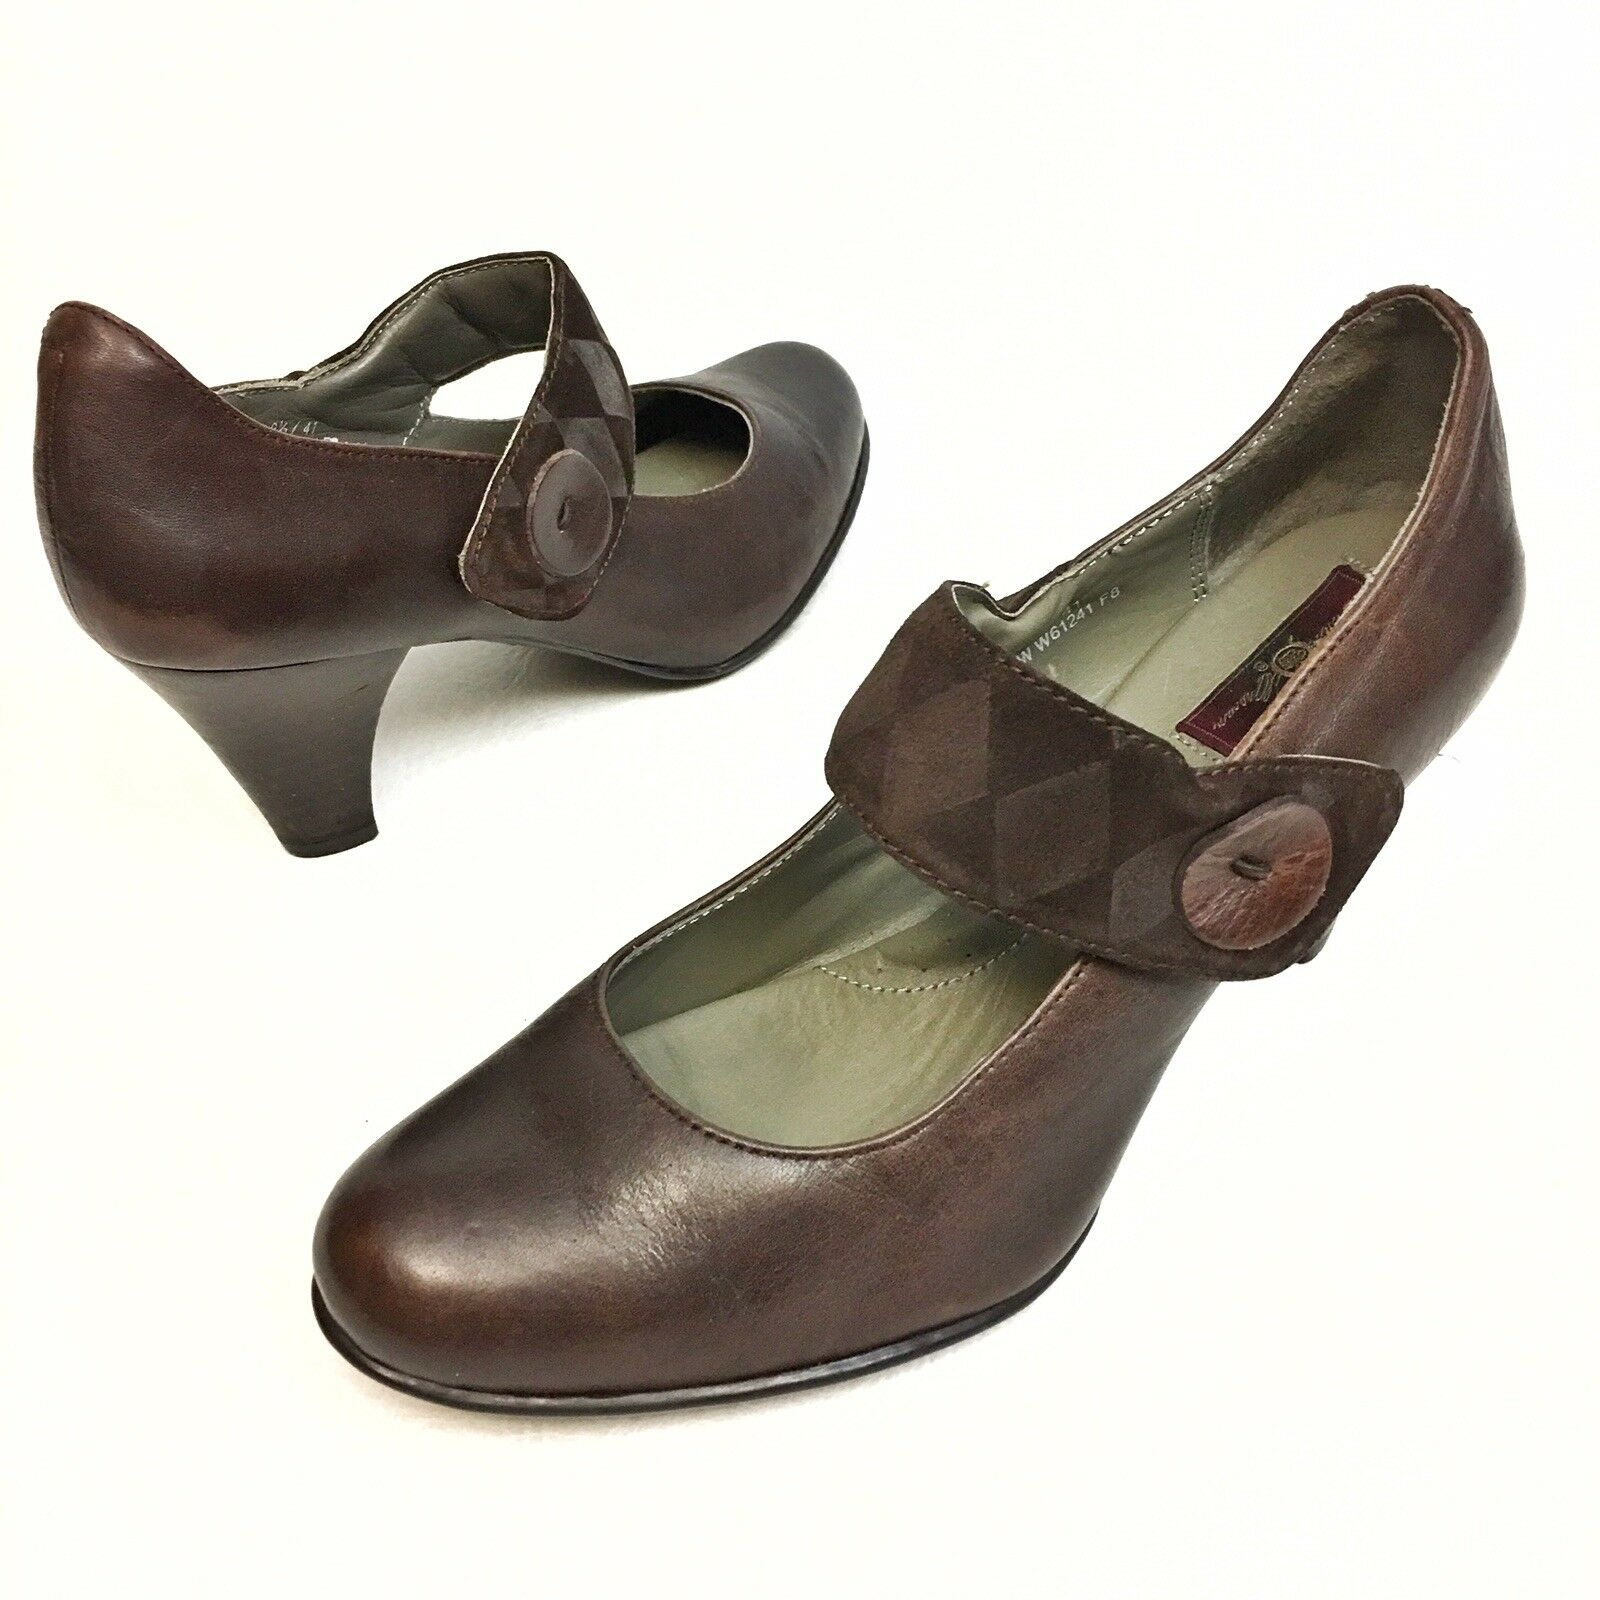 Born Crown Women's Heels Mary Janes Sz 9.5 Eu41 Brown Leather Slip-On Pumps EUC